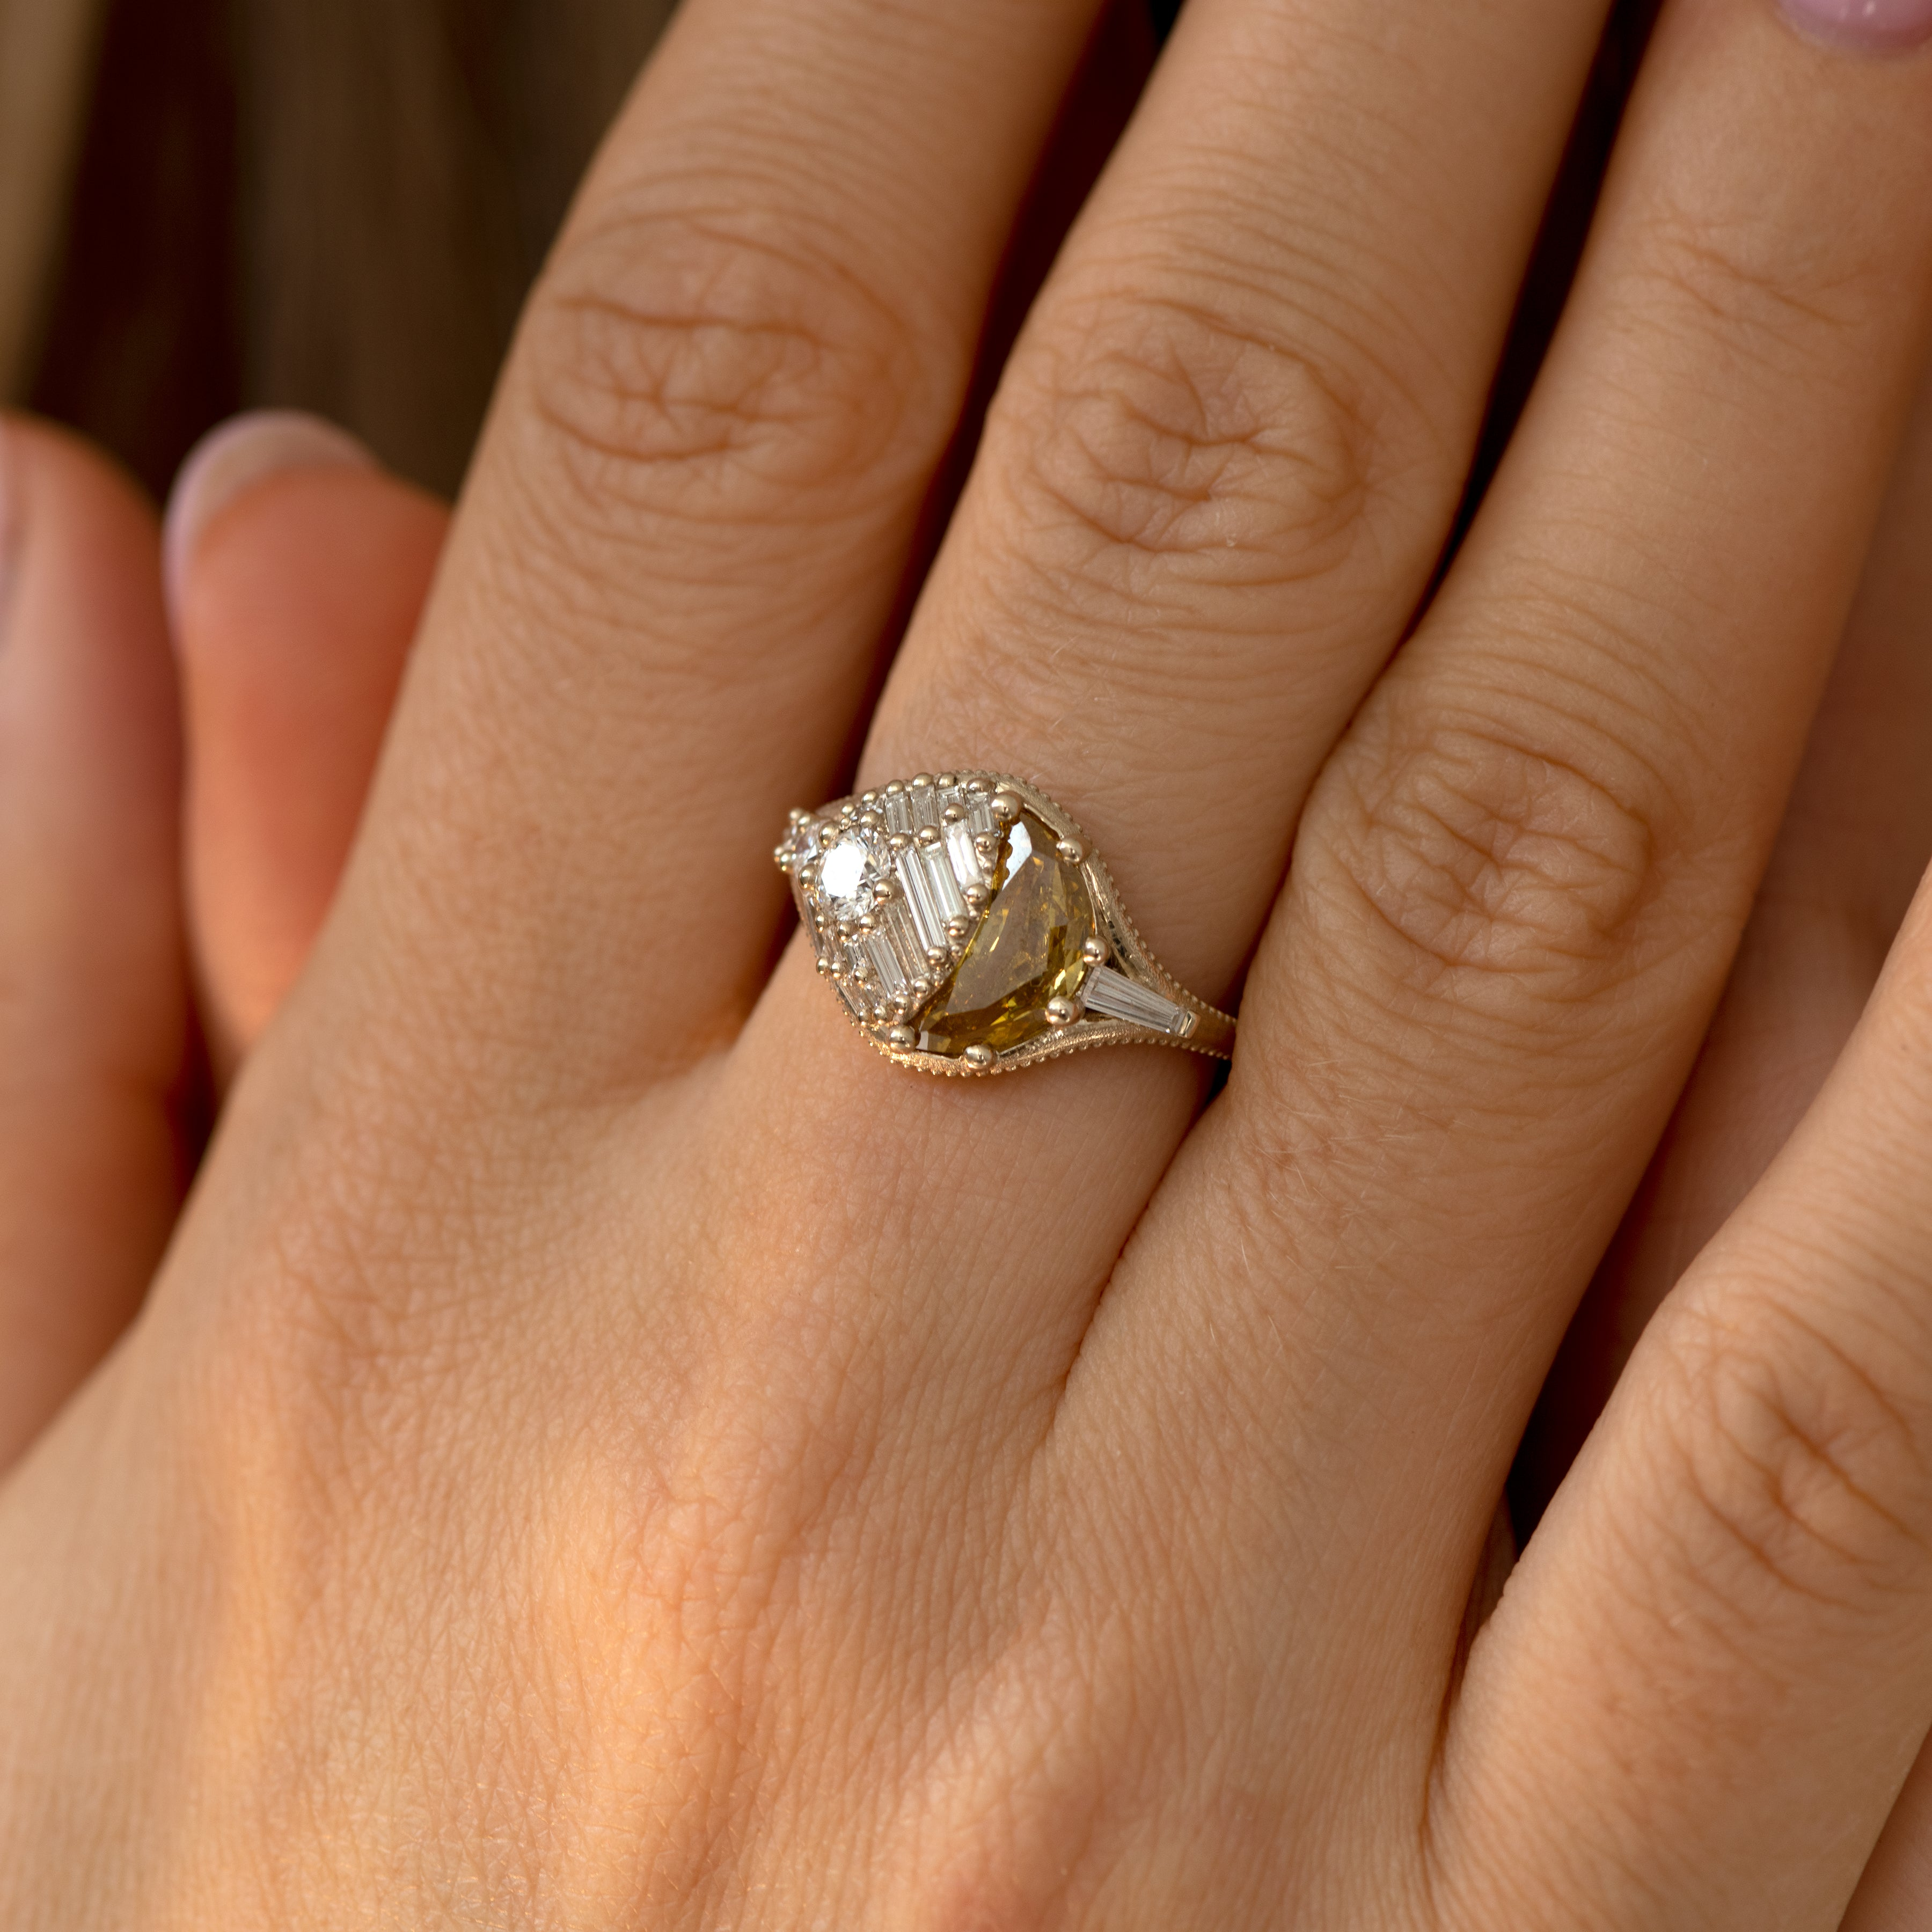 Sun & Star Engagement Ring with Crescent Fancy Color Diamond - OOAK7